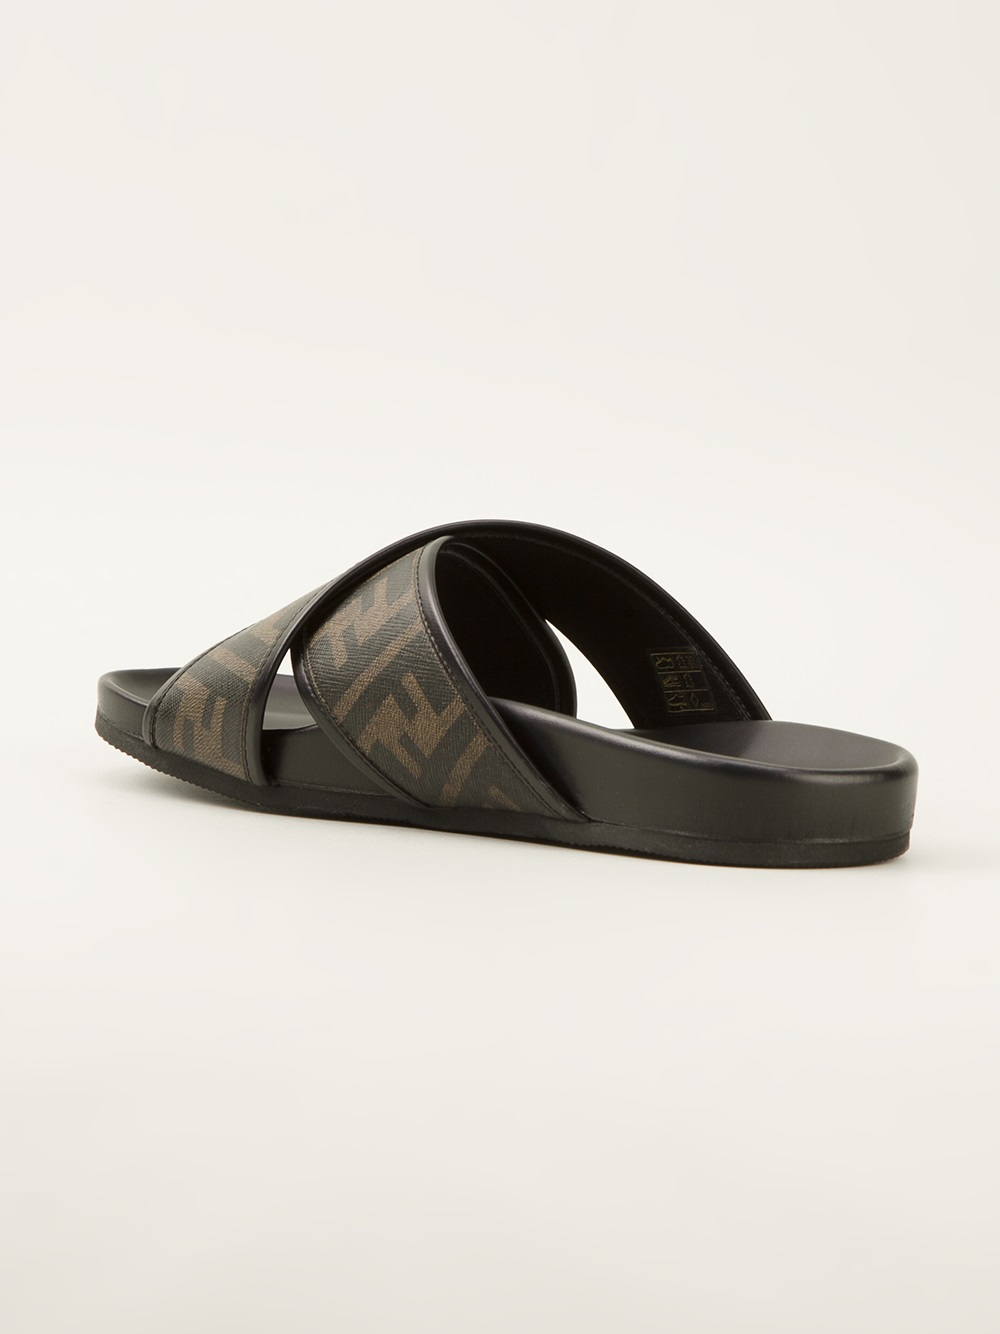 315a4955a9af Fendi Zucca Sandals in Black for Men